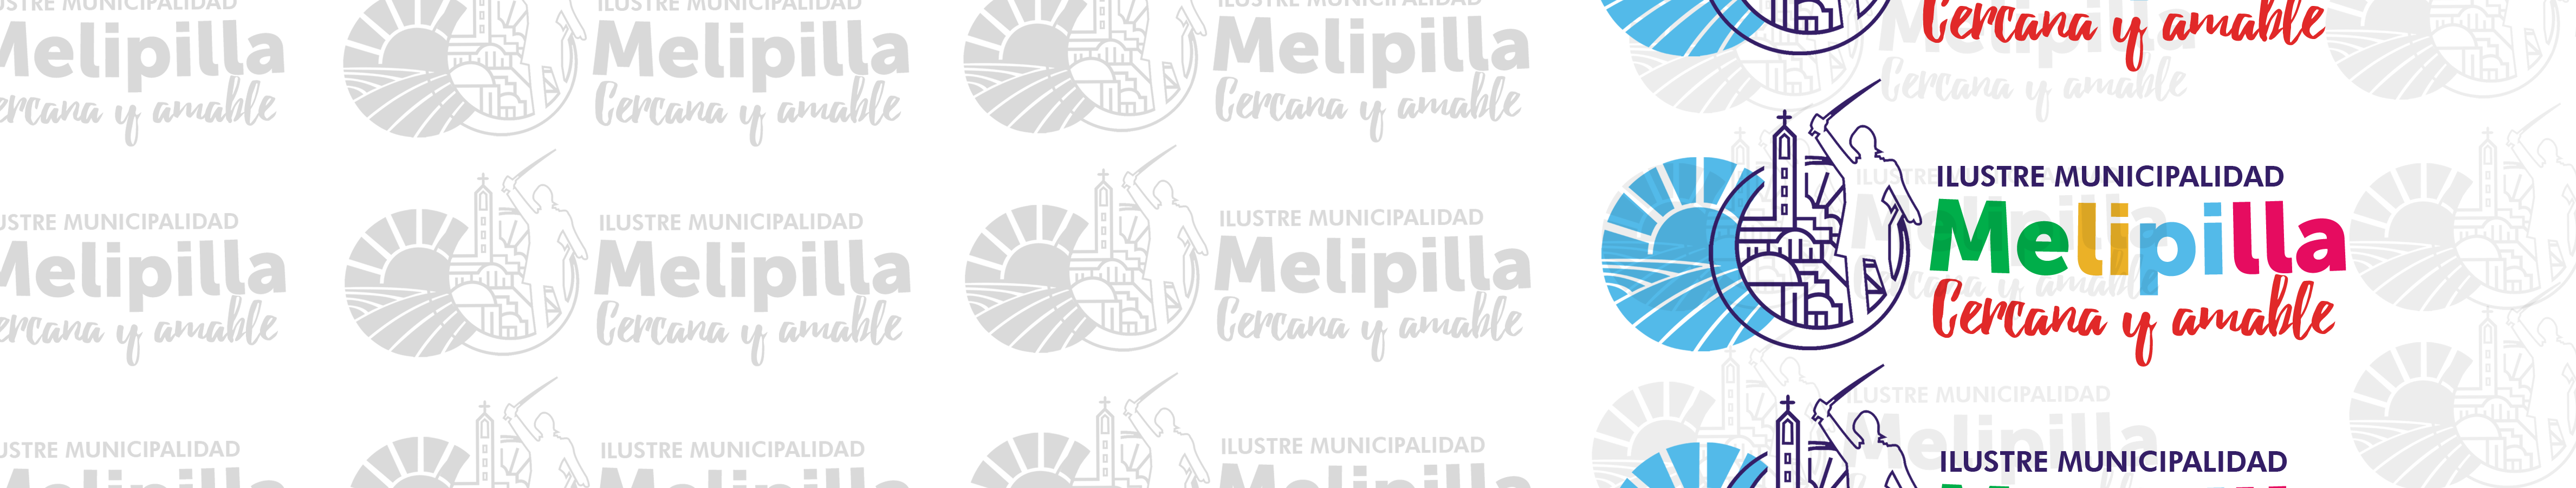 slider-solo-logo-municipio3-copia